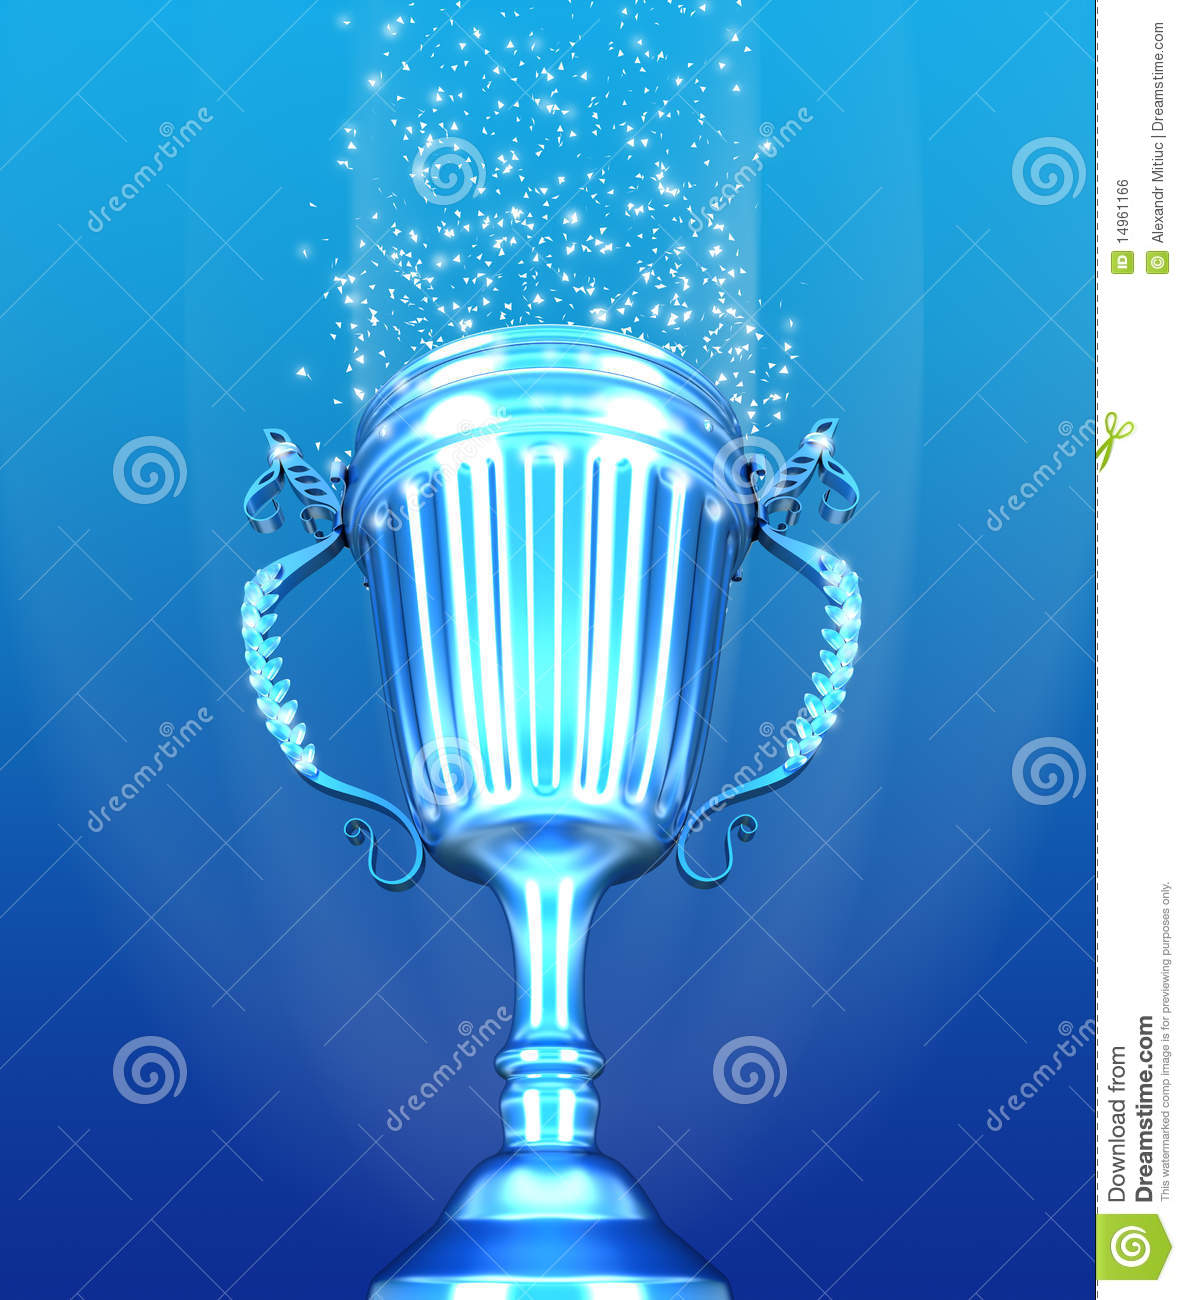 3d Metallic Wallpaper Trophy Cup And Confetti Over Blue Background Royalty Free